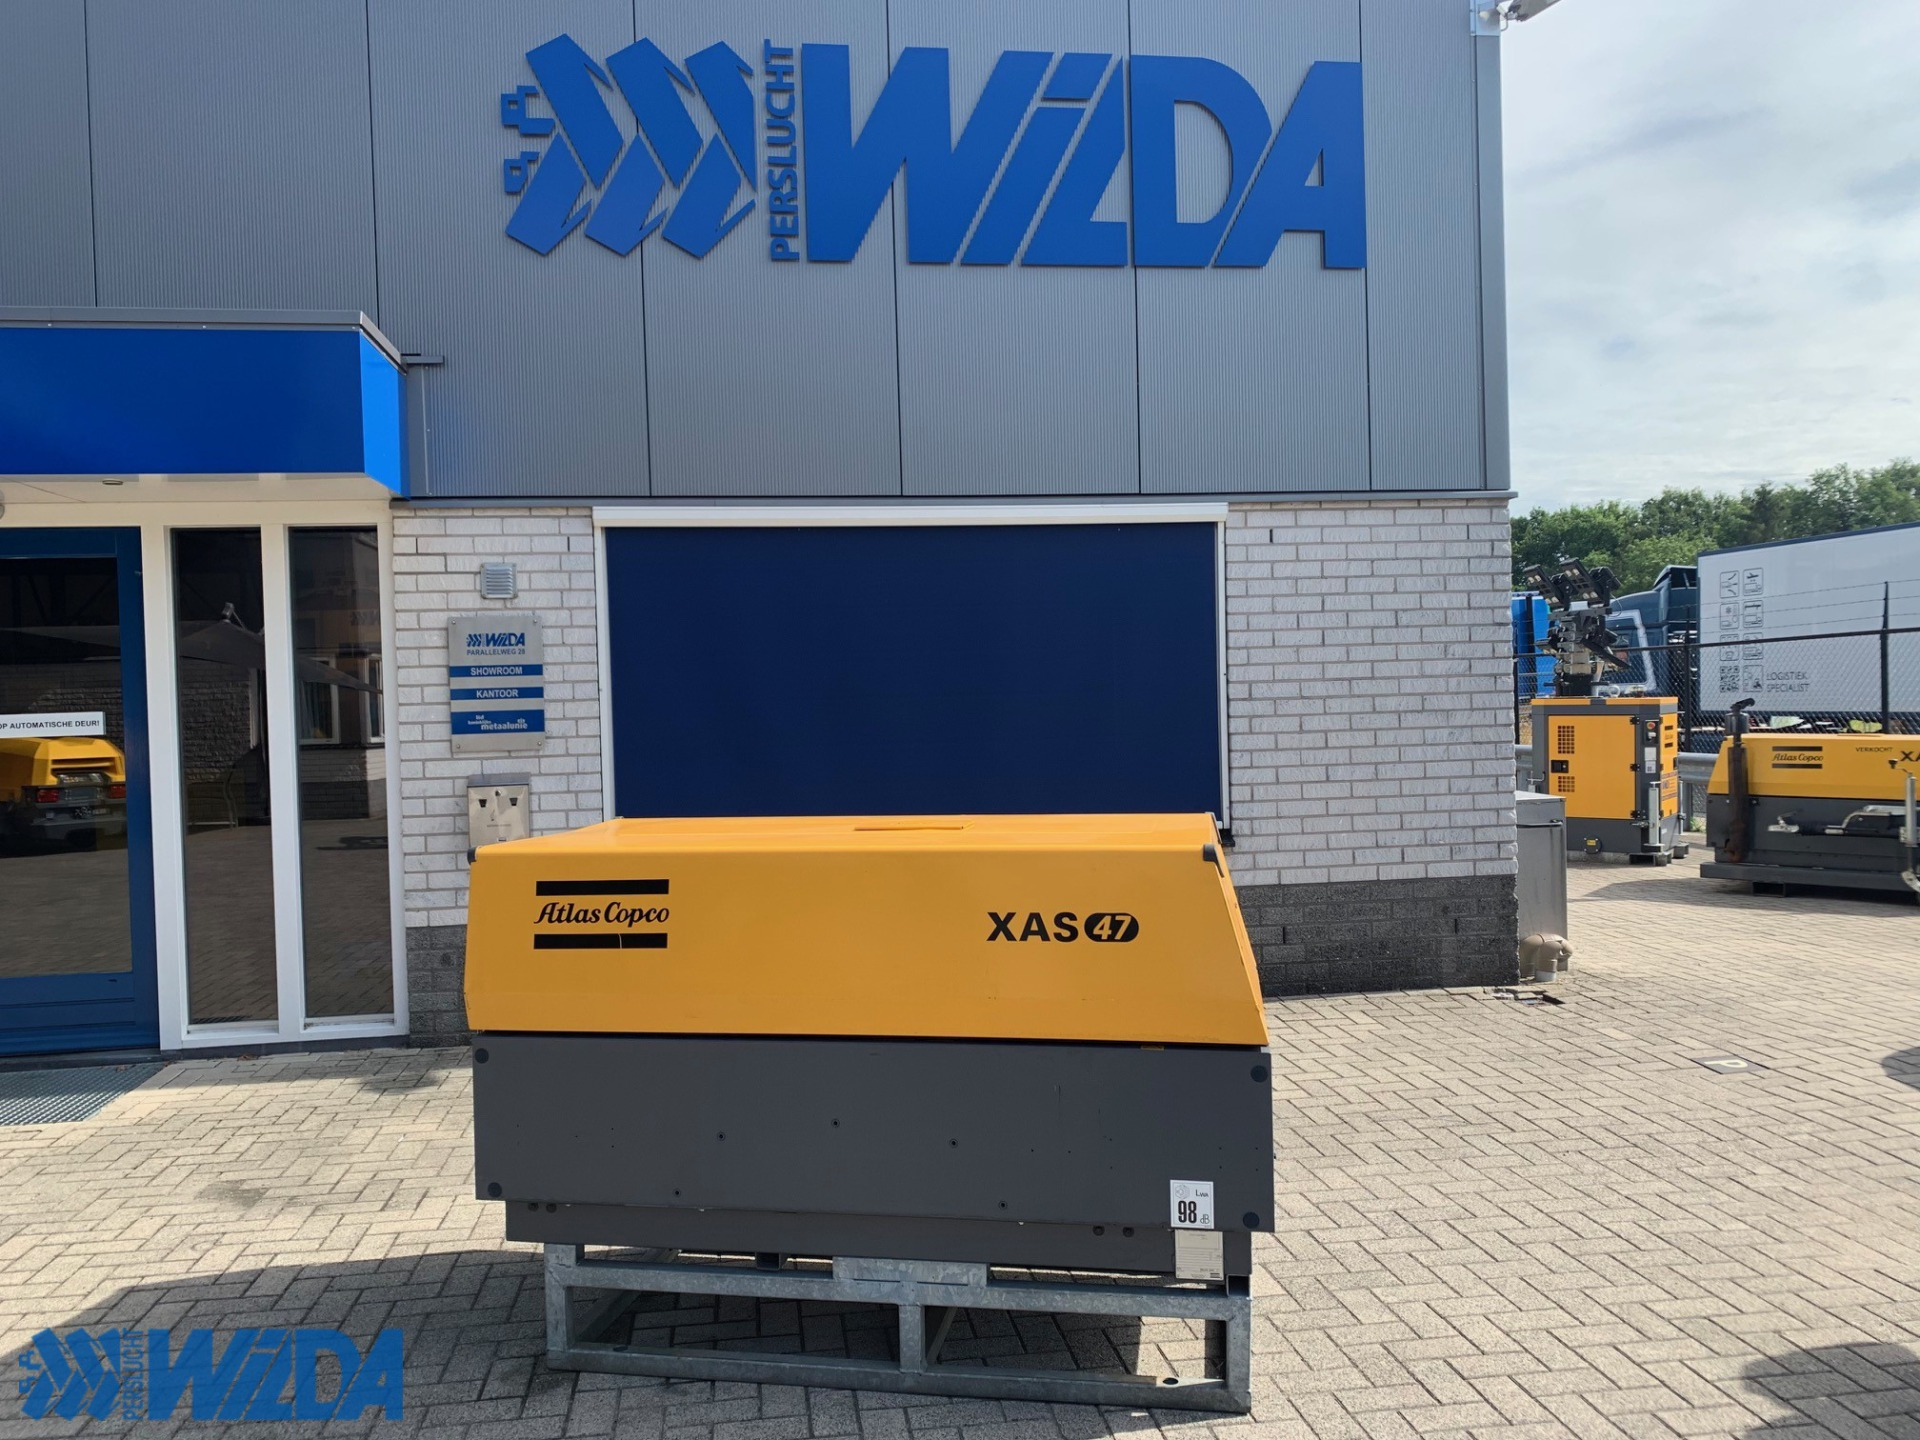 Tweedehands-Atlas-Copco-XAS-47-Kd